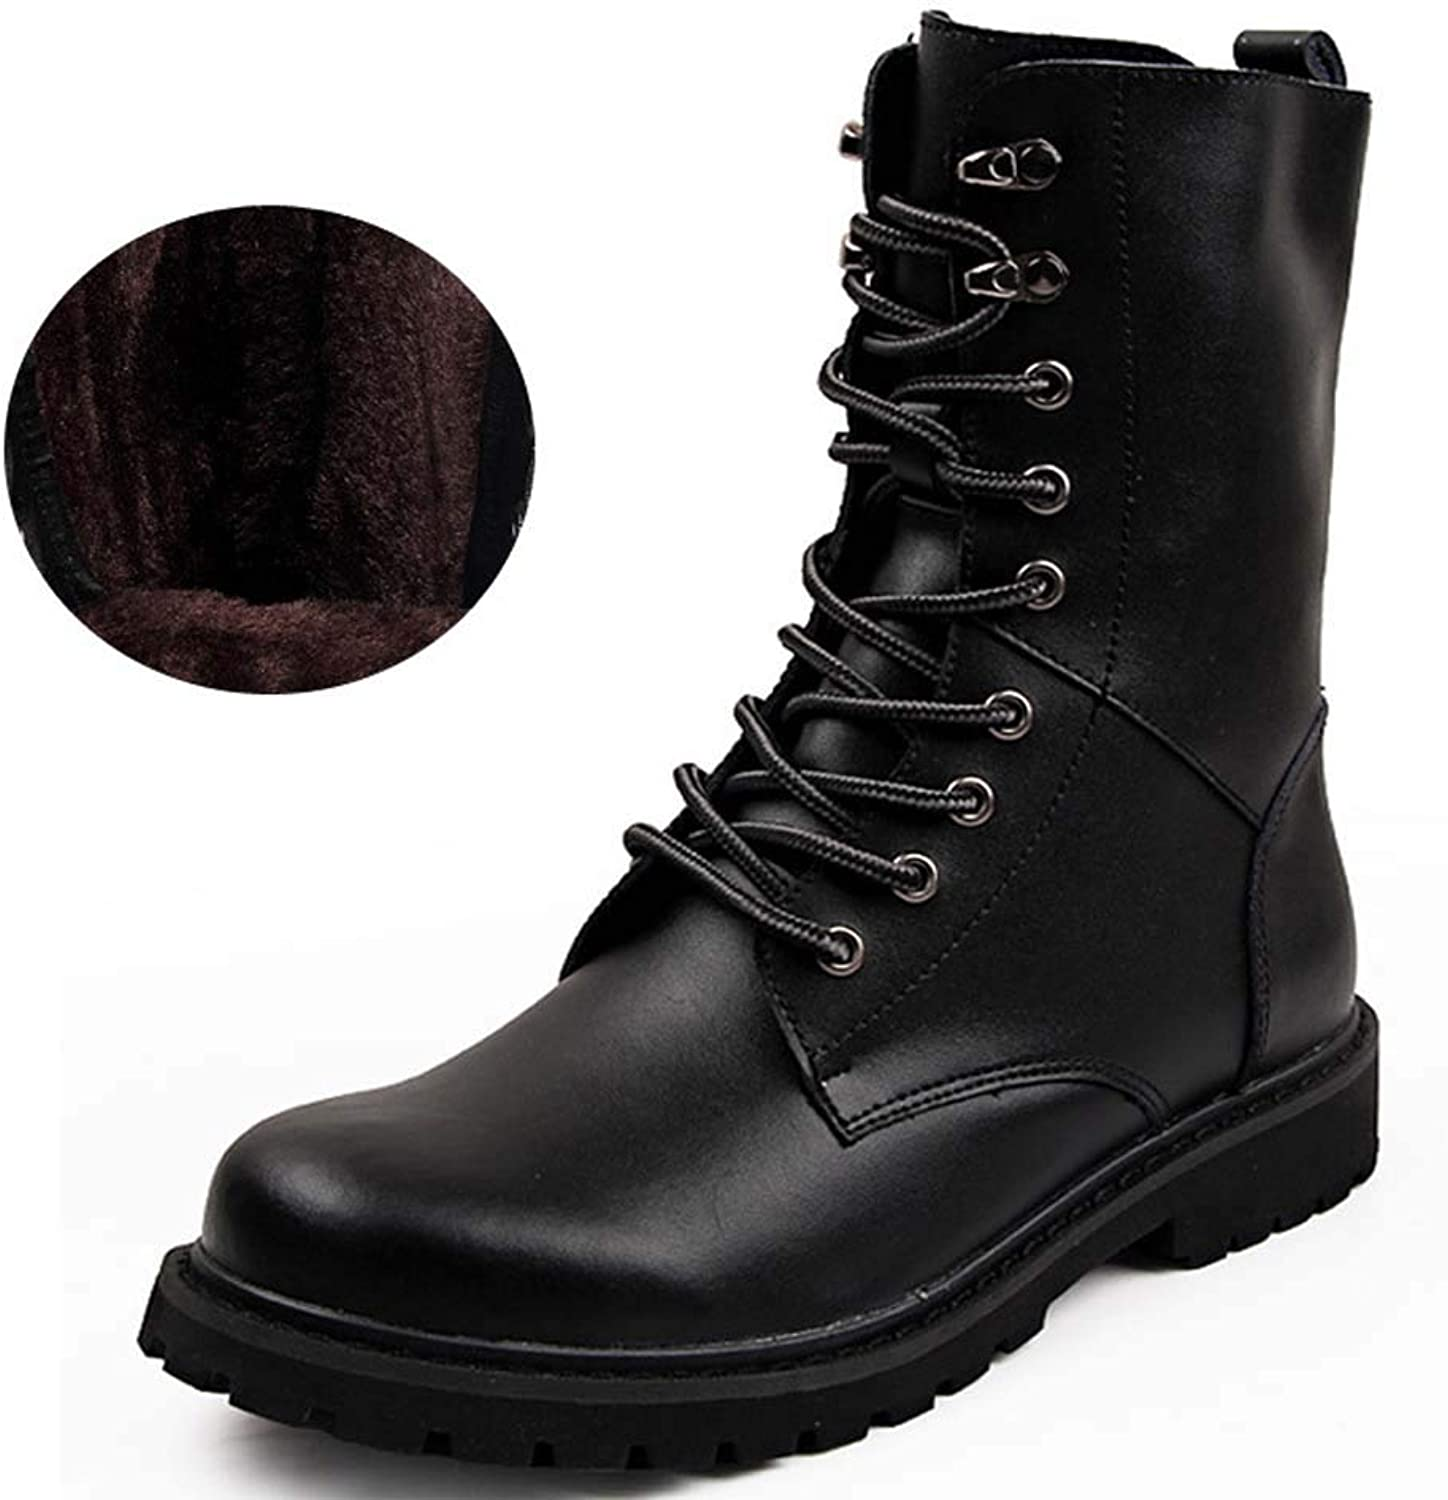 Leather Men's Martin Boots Round Scallop Boots Short Boots Men's shoes